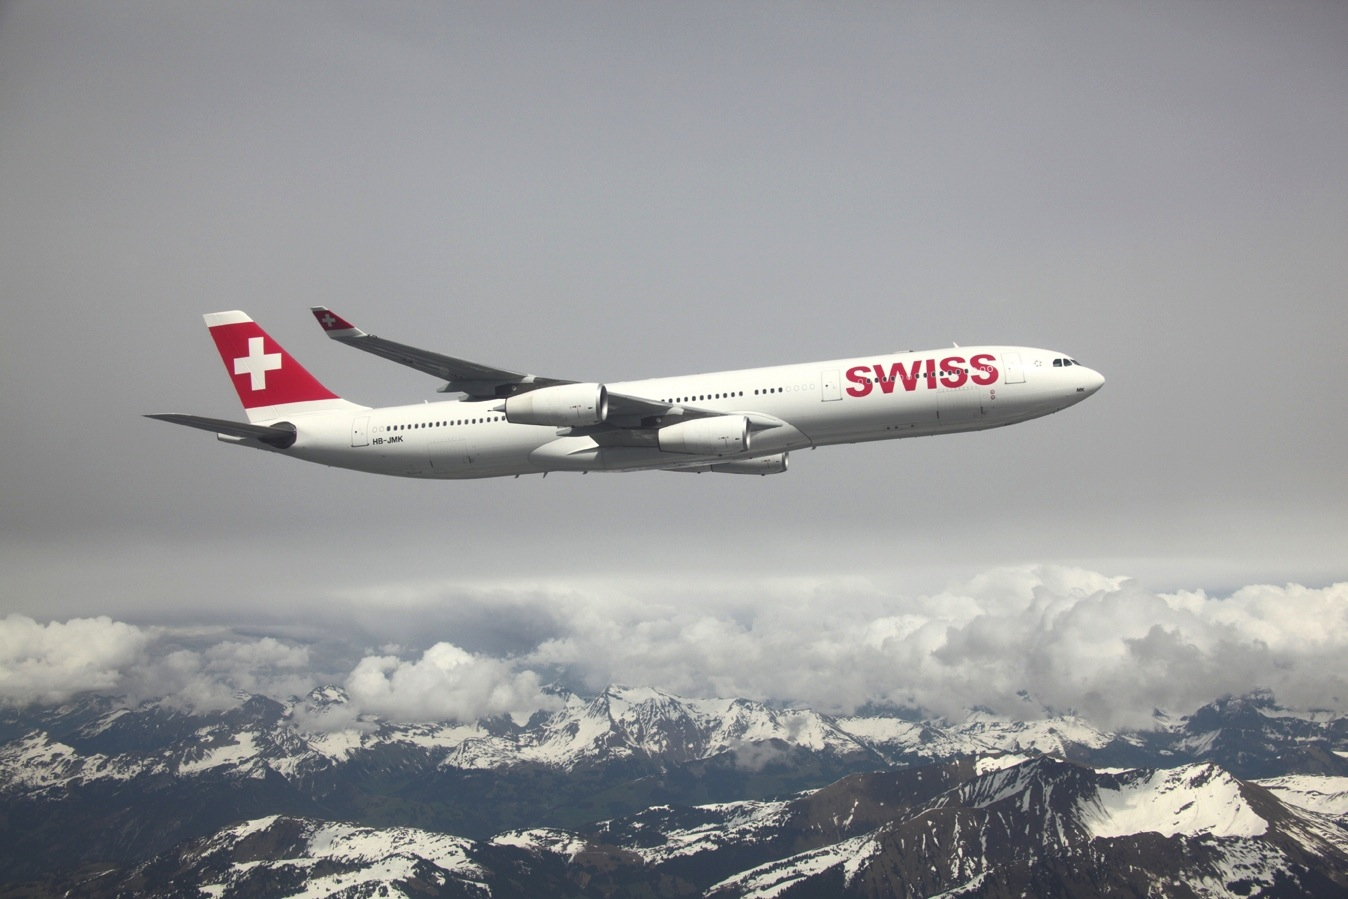 SWISS is set to become the first 'allergy-friendly' airline.